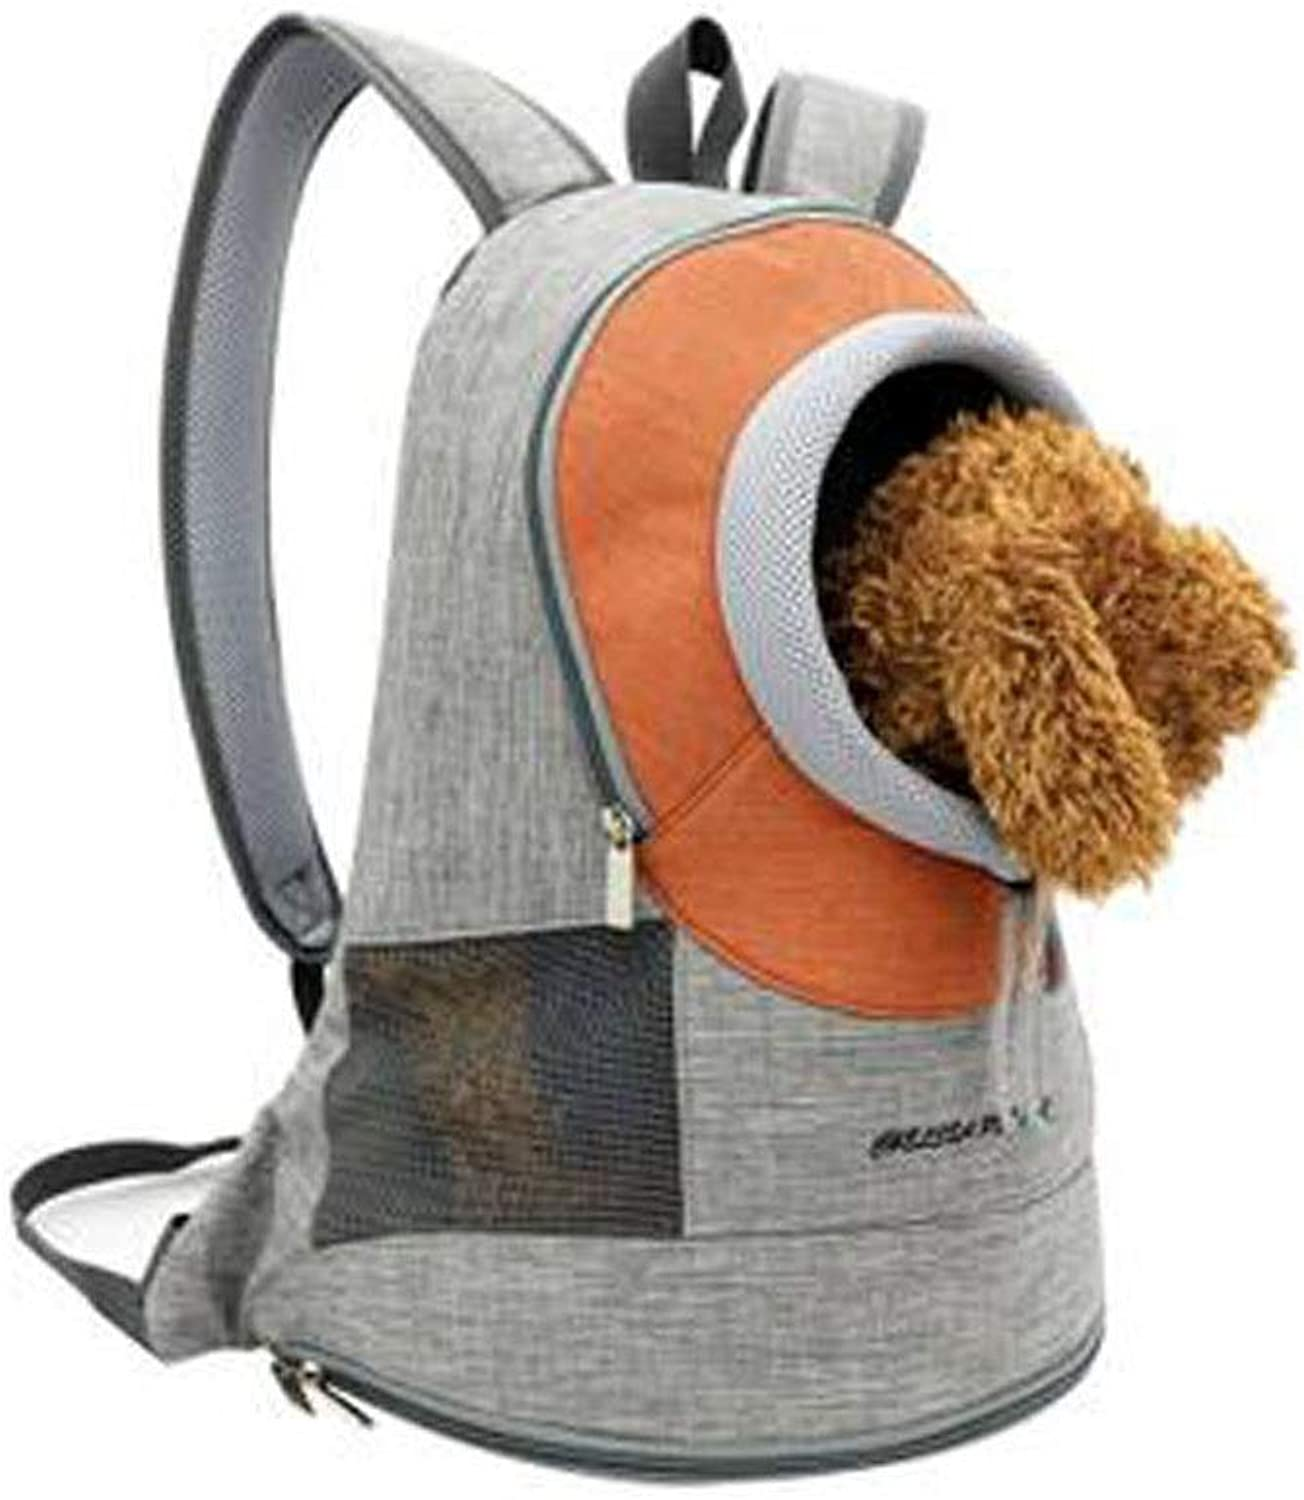 Pet Travel Backpack, Beam Mouth, Suitable for Cat Puppy Soft Backpack, Suitable for Camping, Hiking, Walking(bluee, Green, orange) (color   Lorange)